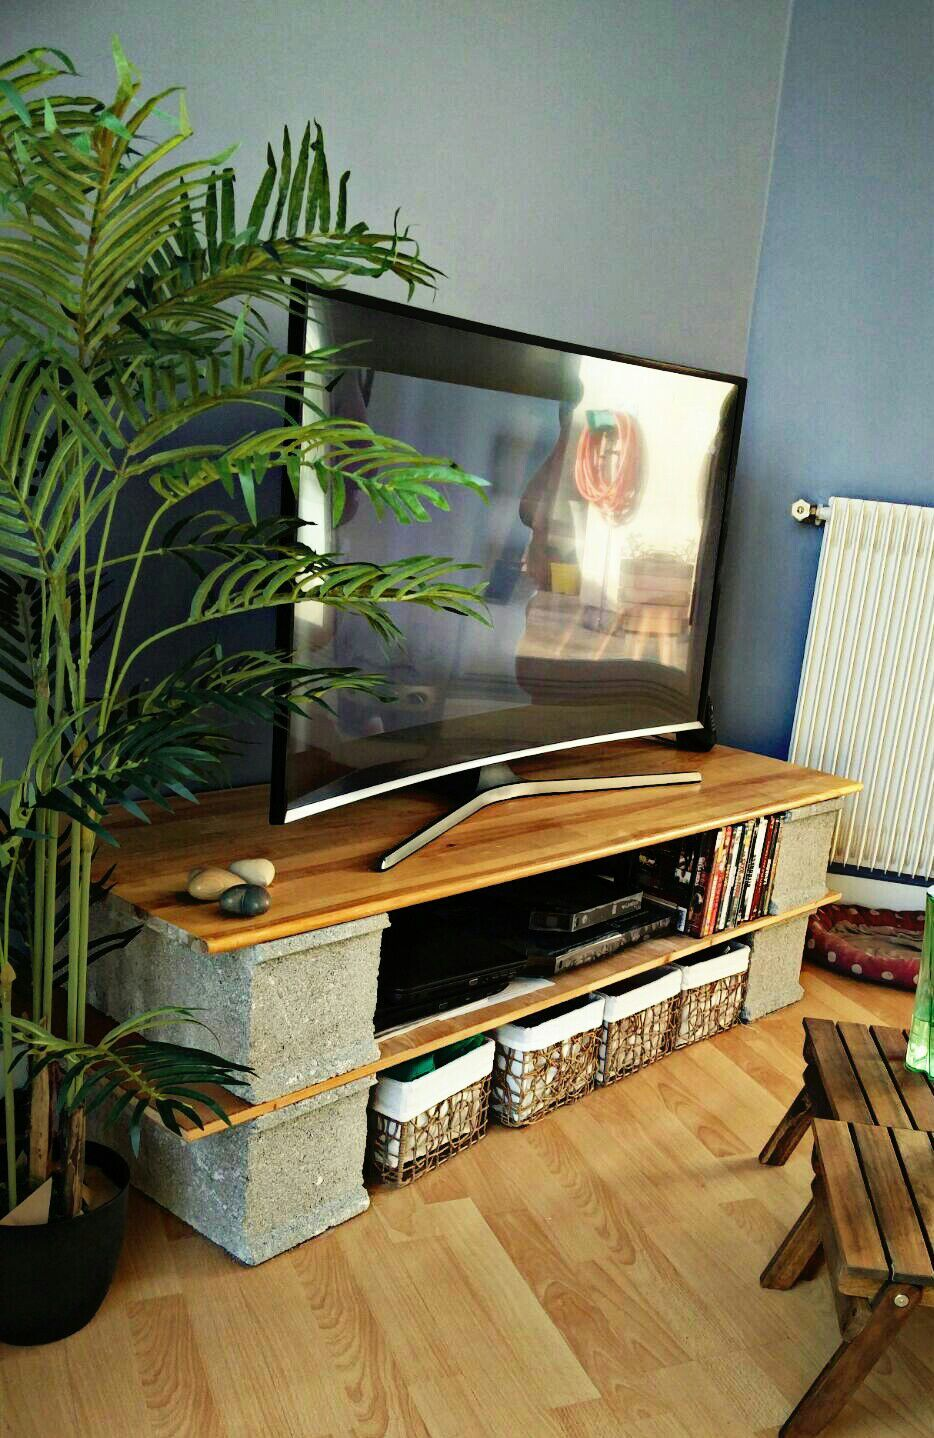 Meuble Tv Parpaing - Meuble Tv Dit Parpaing Et Bois My Actual Loft Pinterest [mjhdah]https://i.pinimg.com/originals/00/89/7e/00897ec9371536bf000eca2fc885cb33.jpg